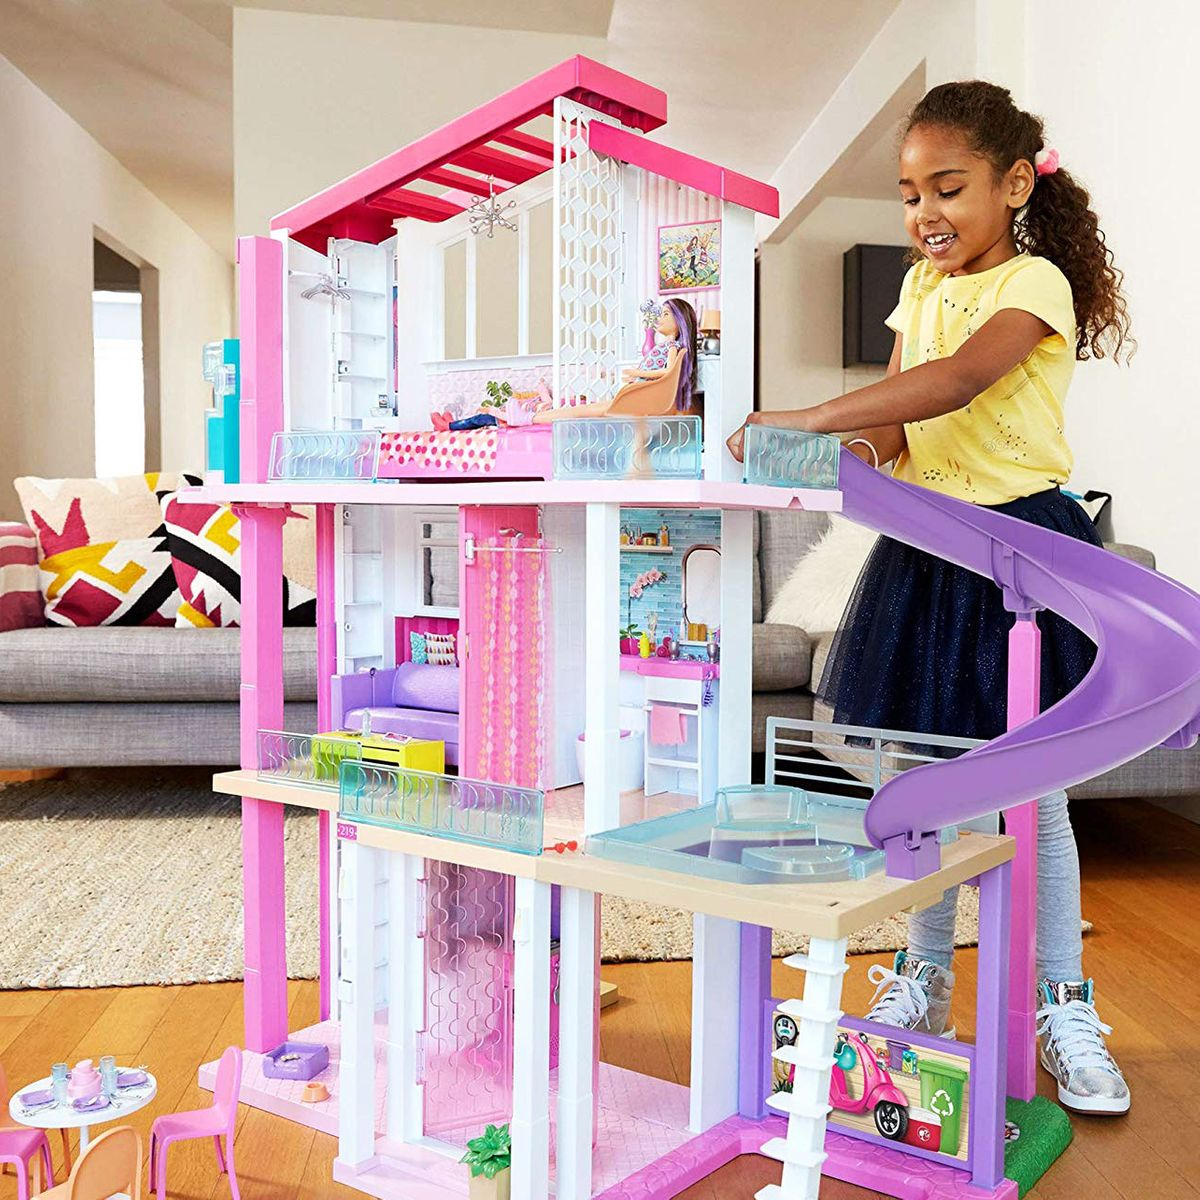 12 Best Dollhouses For Kids Reviewed 2019 The Strategist New York Magazine